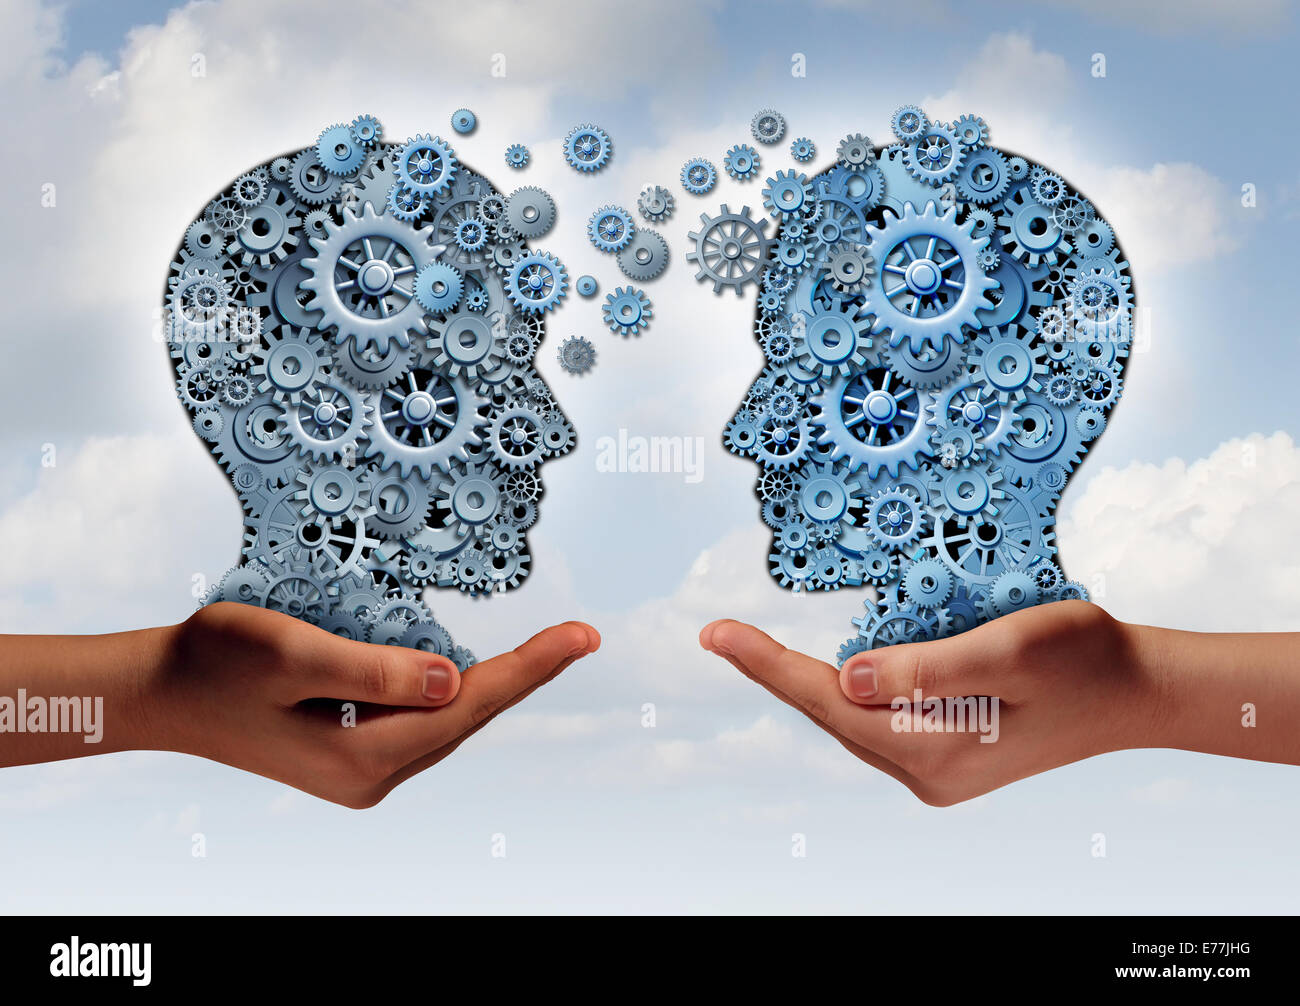 Business technology concept as two hands holding a group of  machine gears shaped as a human head as a symbol and - Stock Image